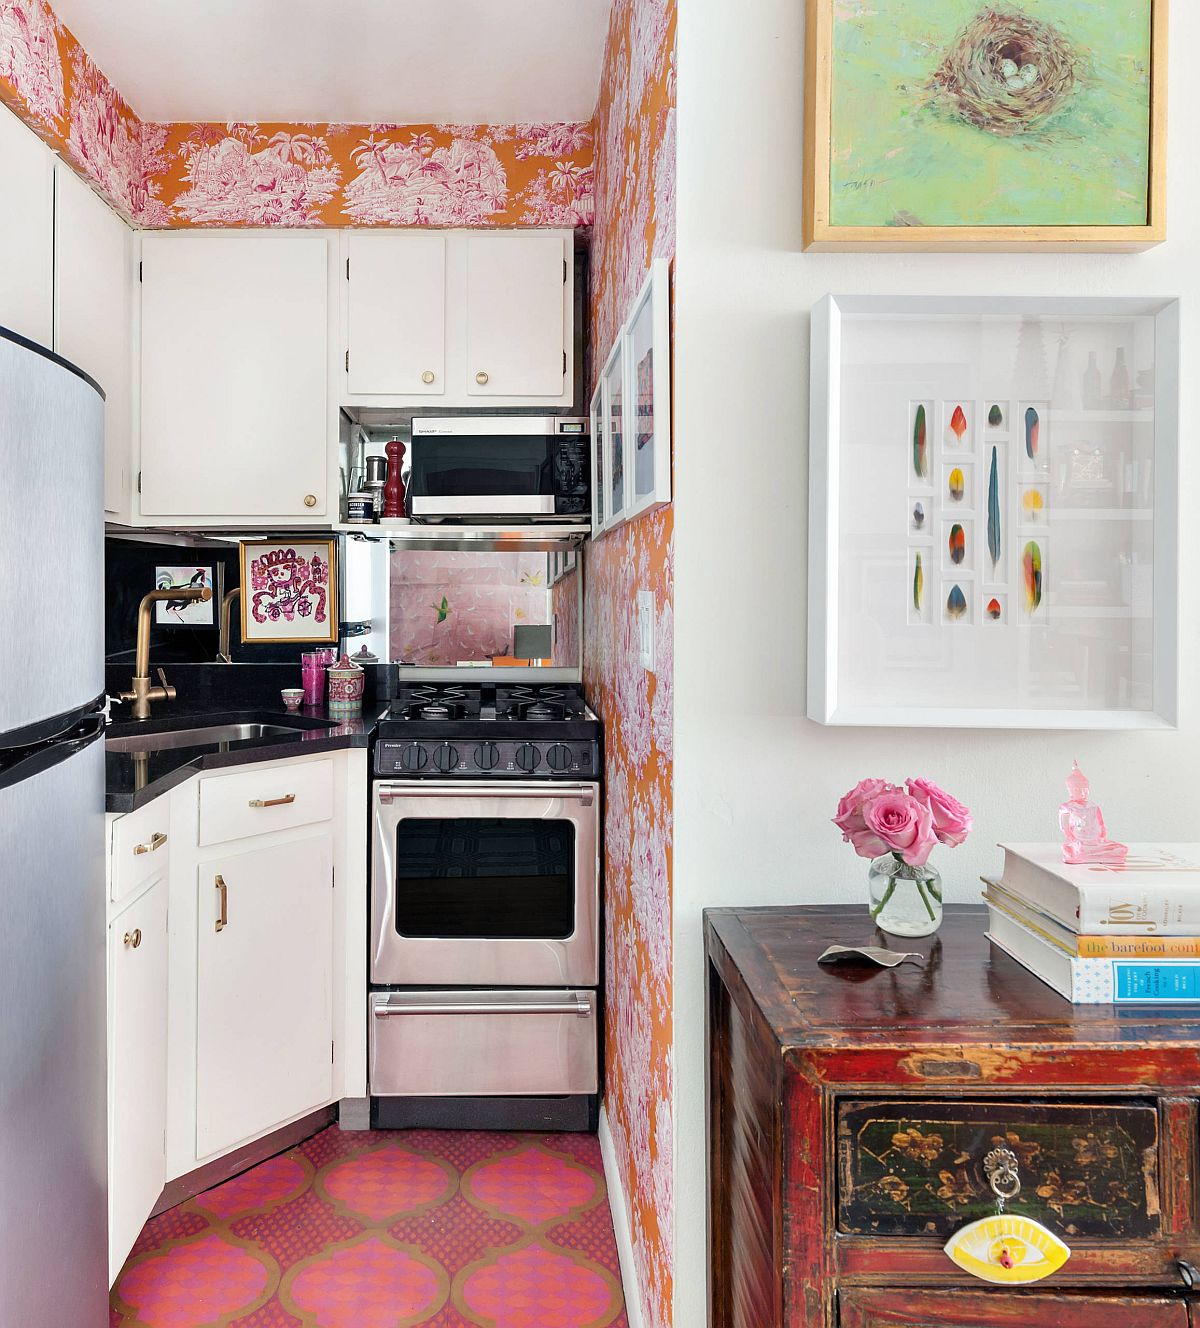 Orange-colored-wallpaper-used-to-delineate-the-small-kitchen-in-corner-with-eclectic-style-98260